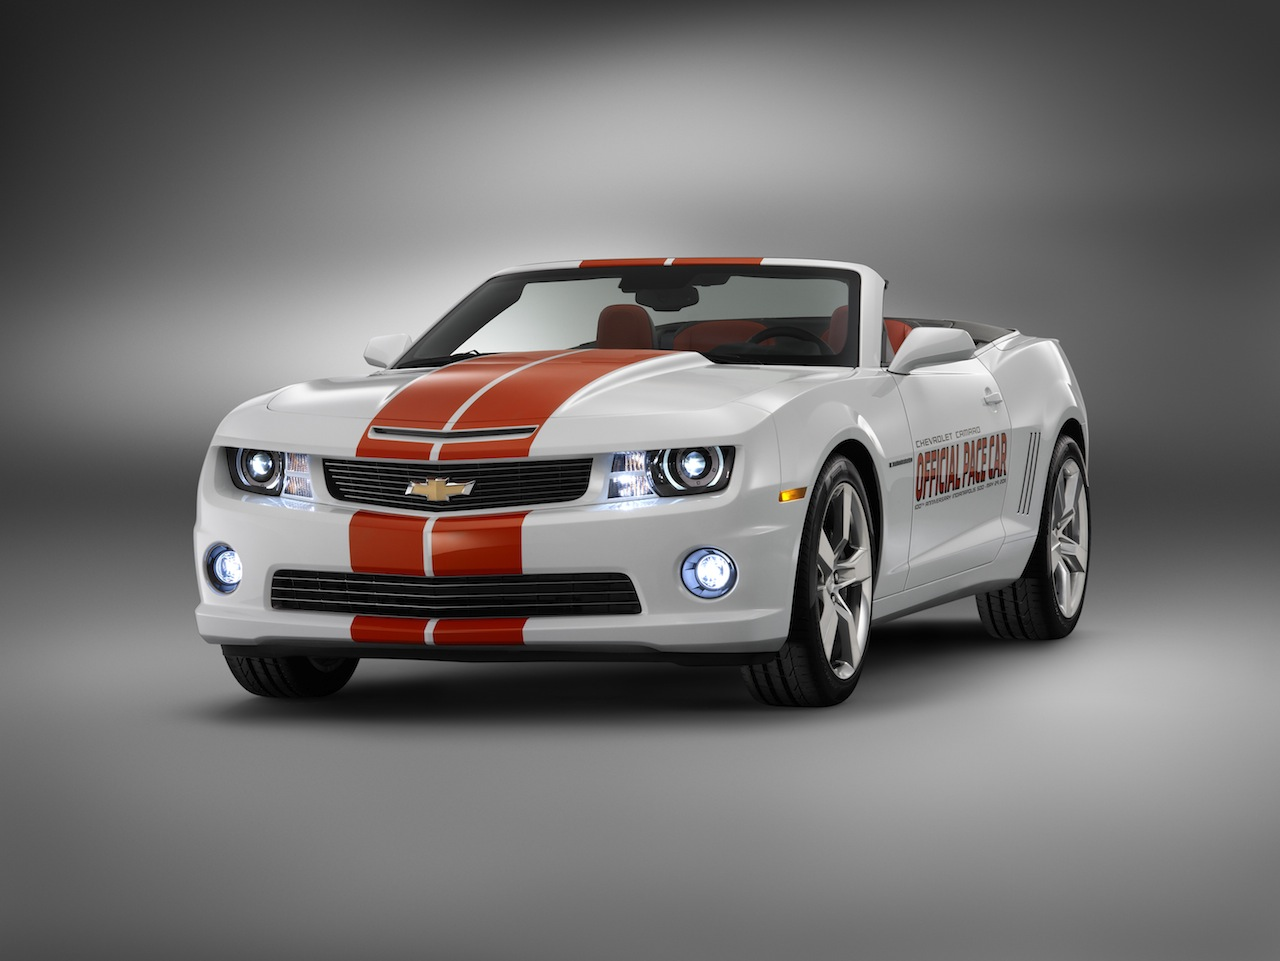 Chevrolet camaro 2011 photo - 5